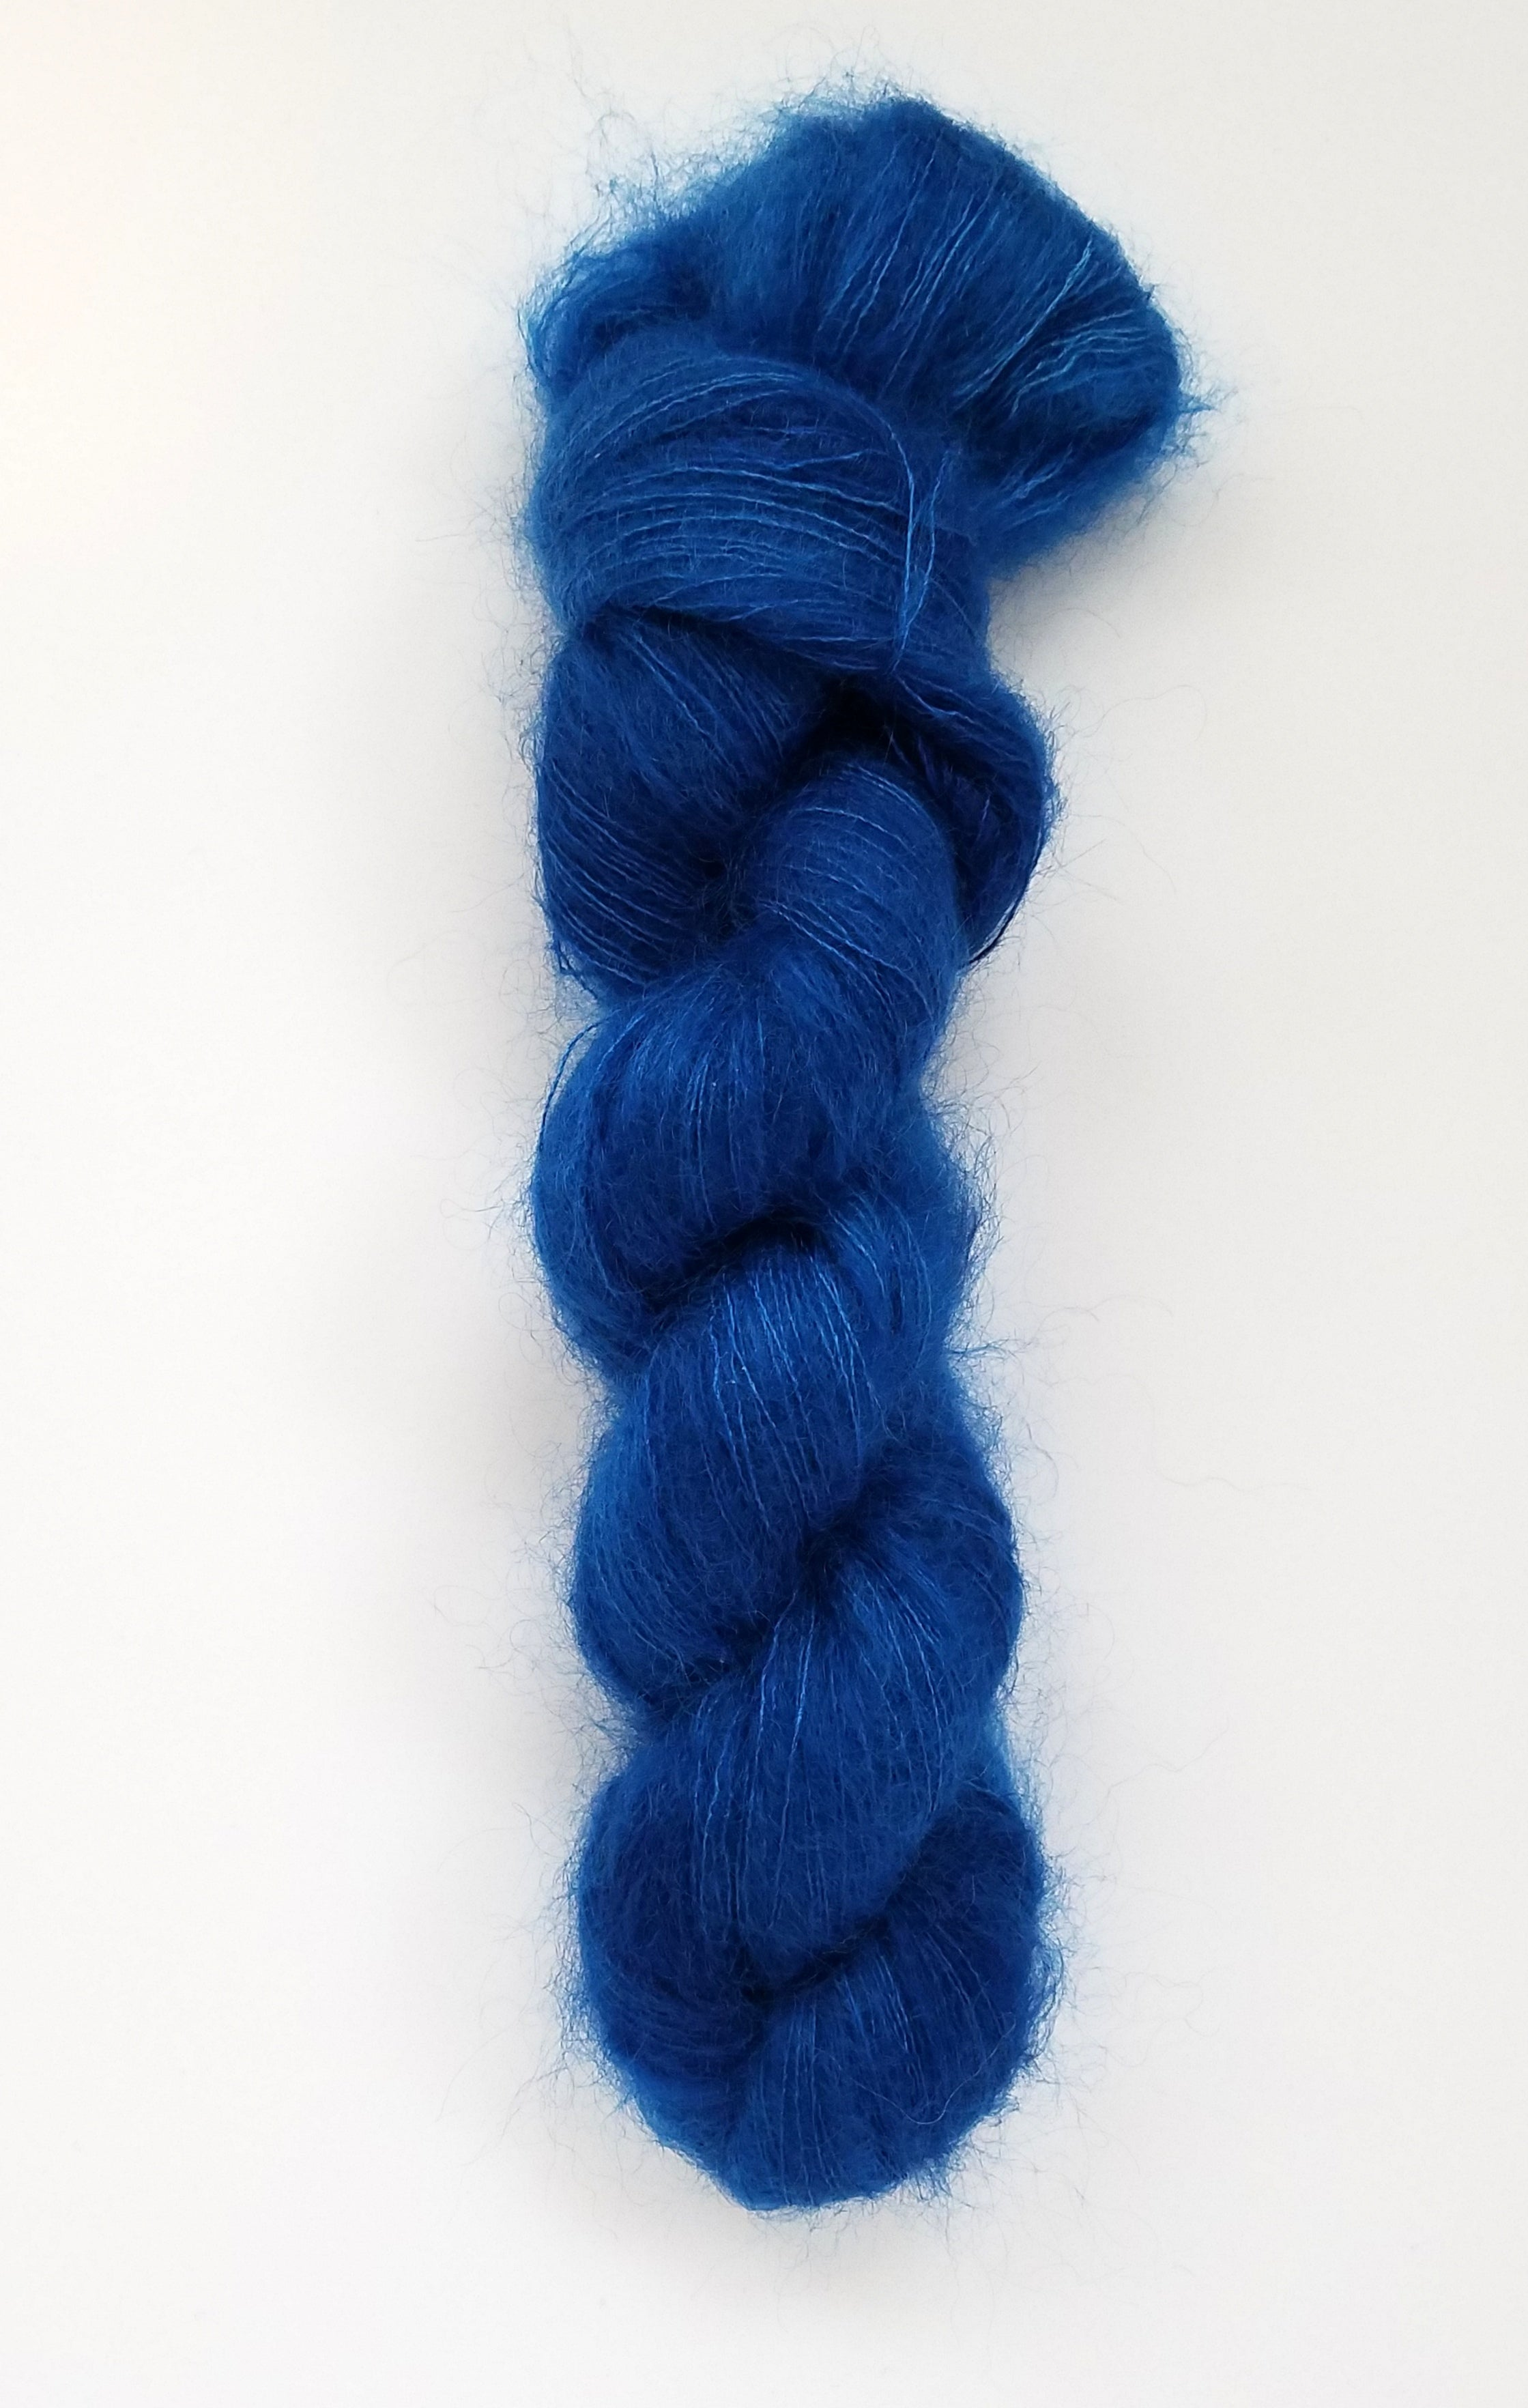 Delphine Hand Dyed Yarn Semi Solid Blue